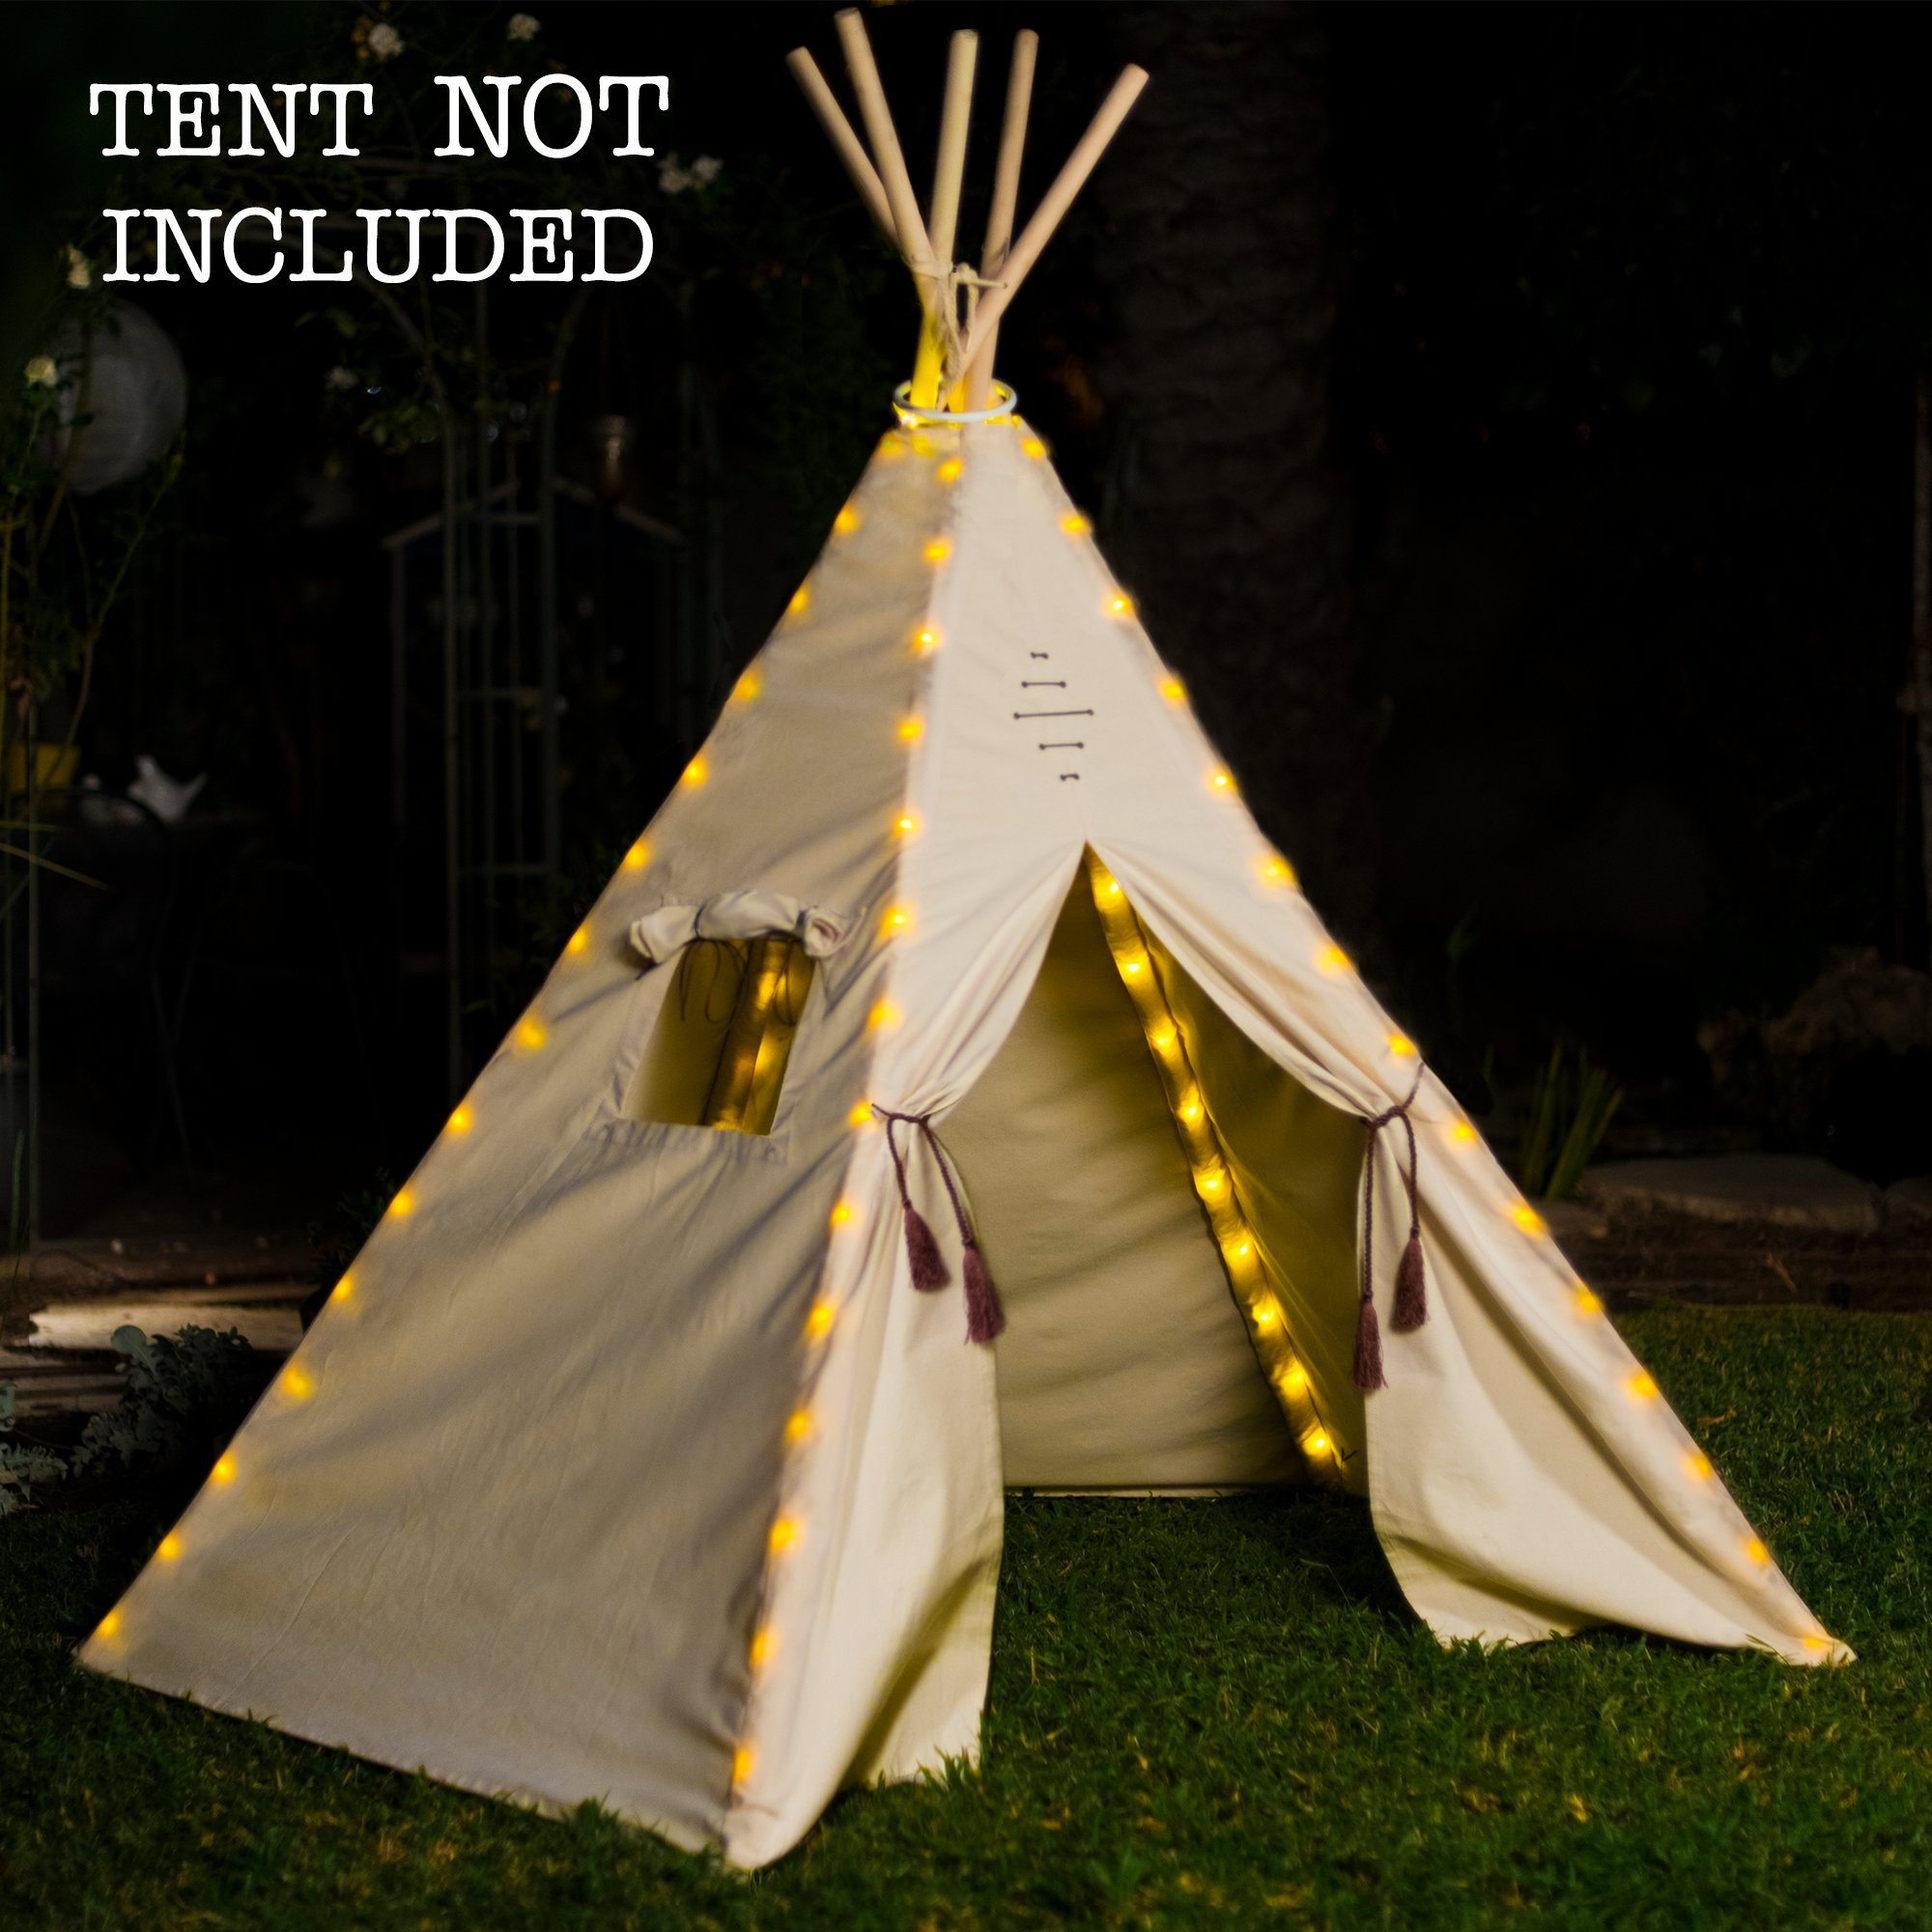 Fairy Lights for Teepee Tents - Battery Operated. Set of 75 Bright Yellow LED Bulbs. Easy Installation, Universal Design - Our Decoration Light Set Fits Most Kids Playhouses. TENT NOT INCLUDED.